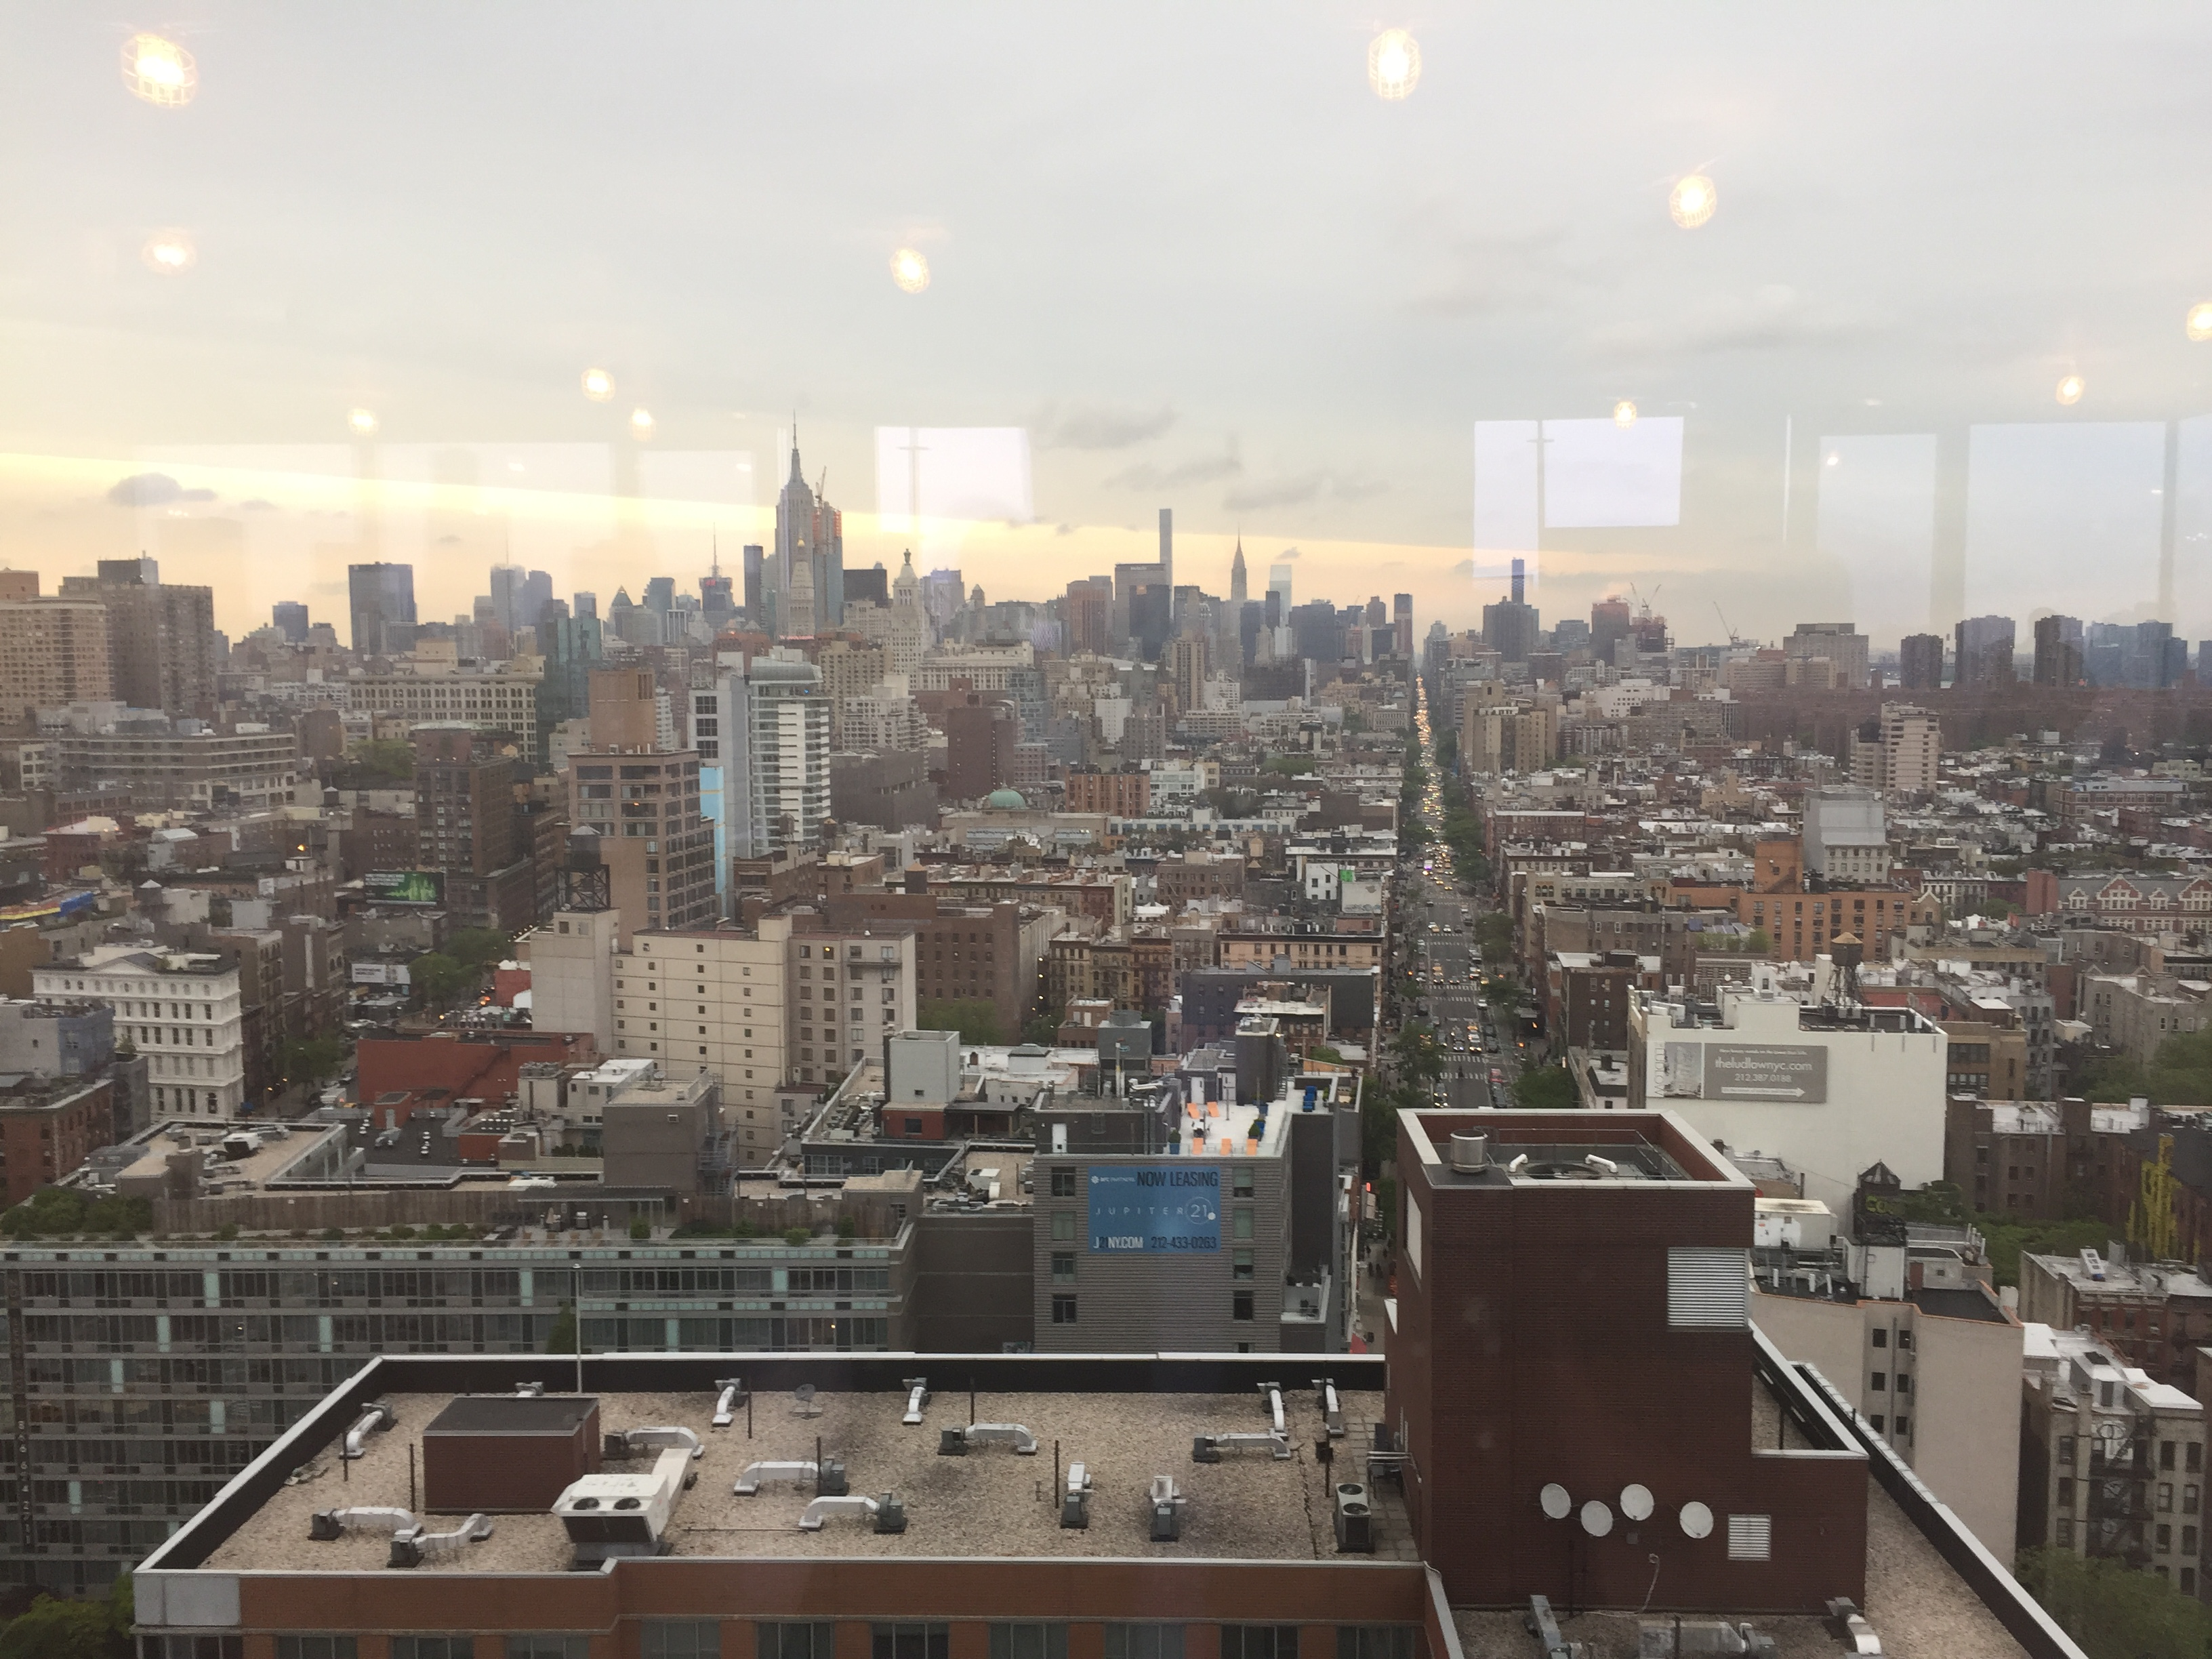 North view from 215 Chrystie. Photo by Evan Bindelglass, taken on iPhone 6